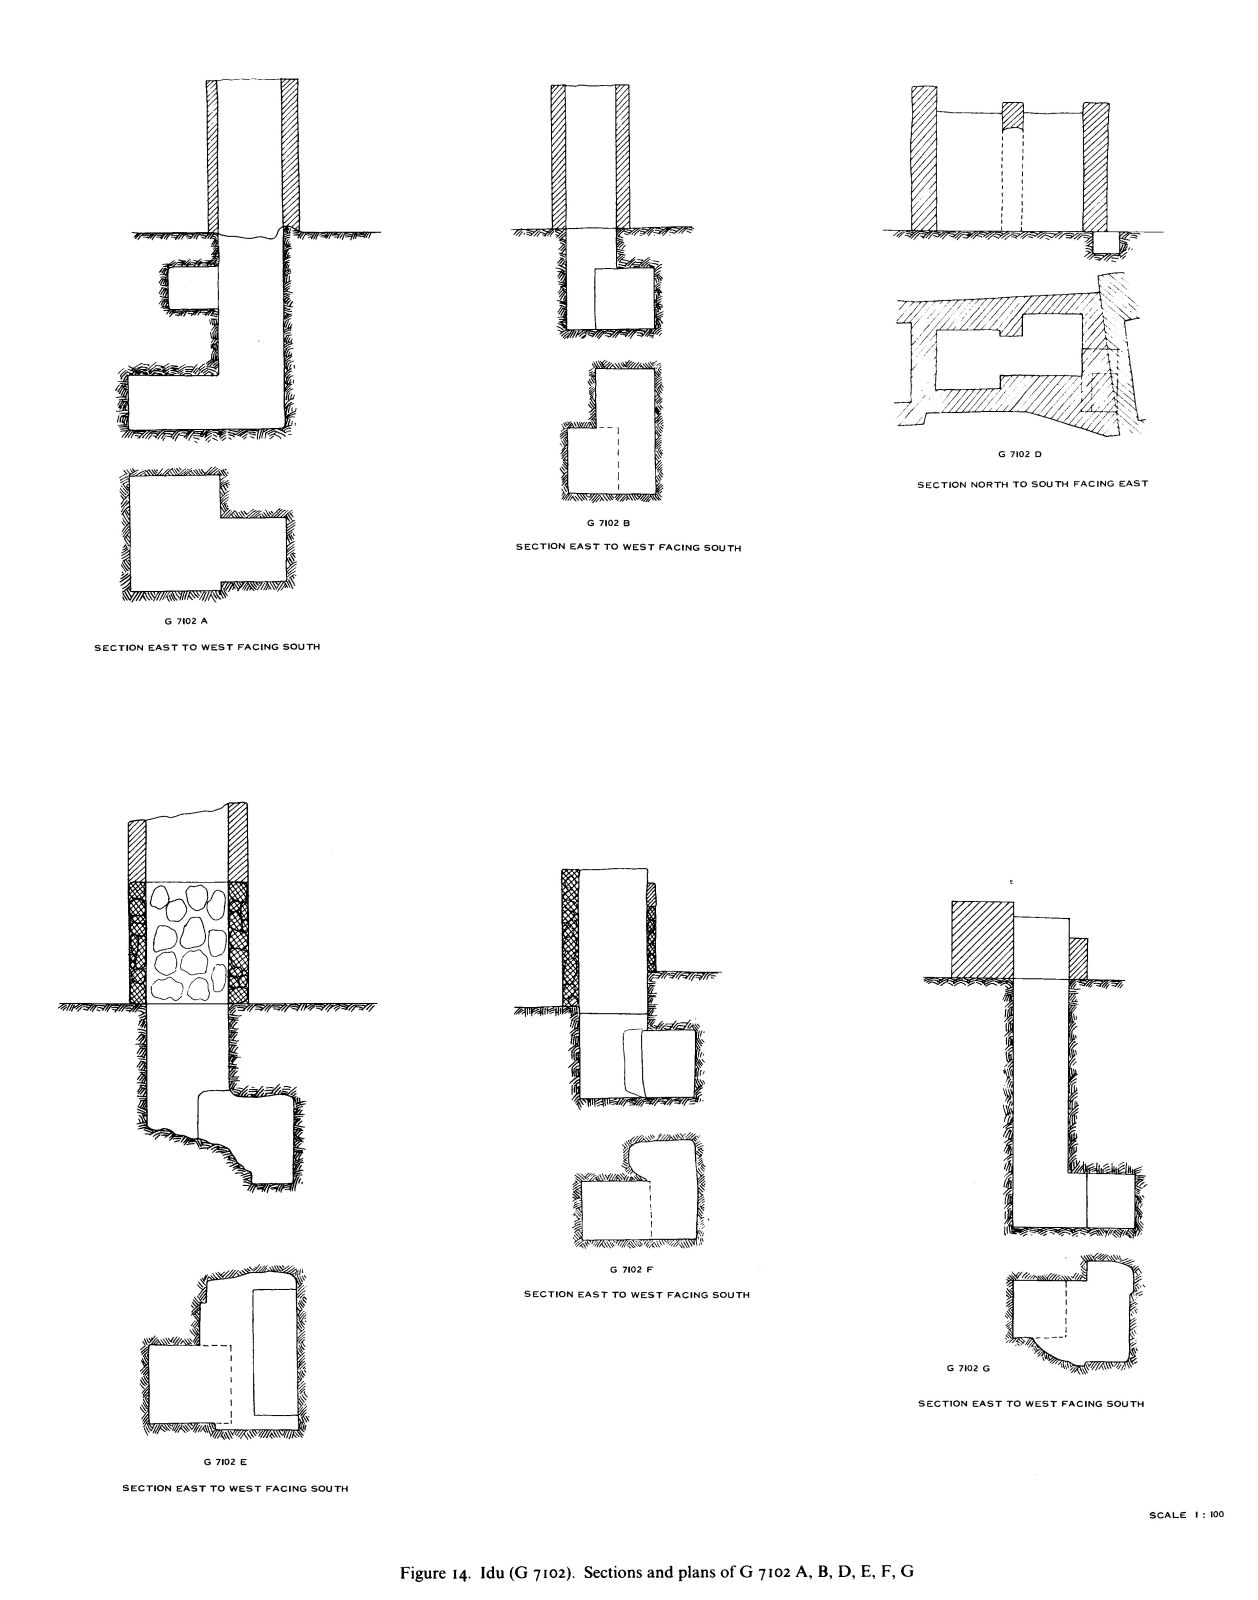 Maps and plans: G 7102, Shaft A, B, D-G